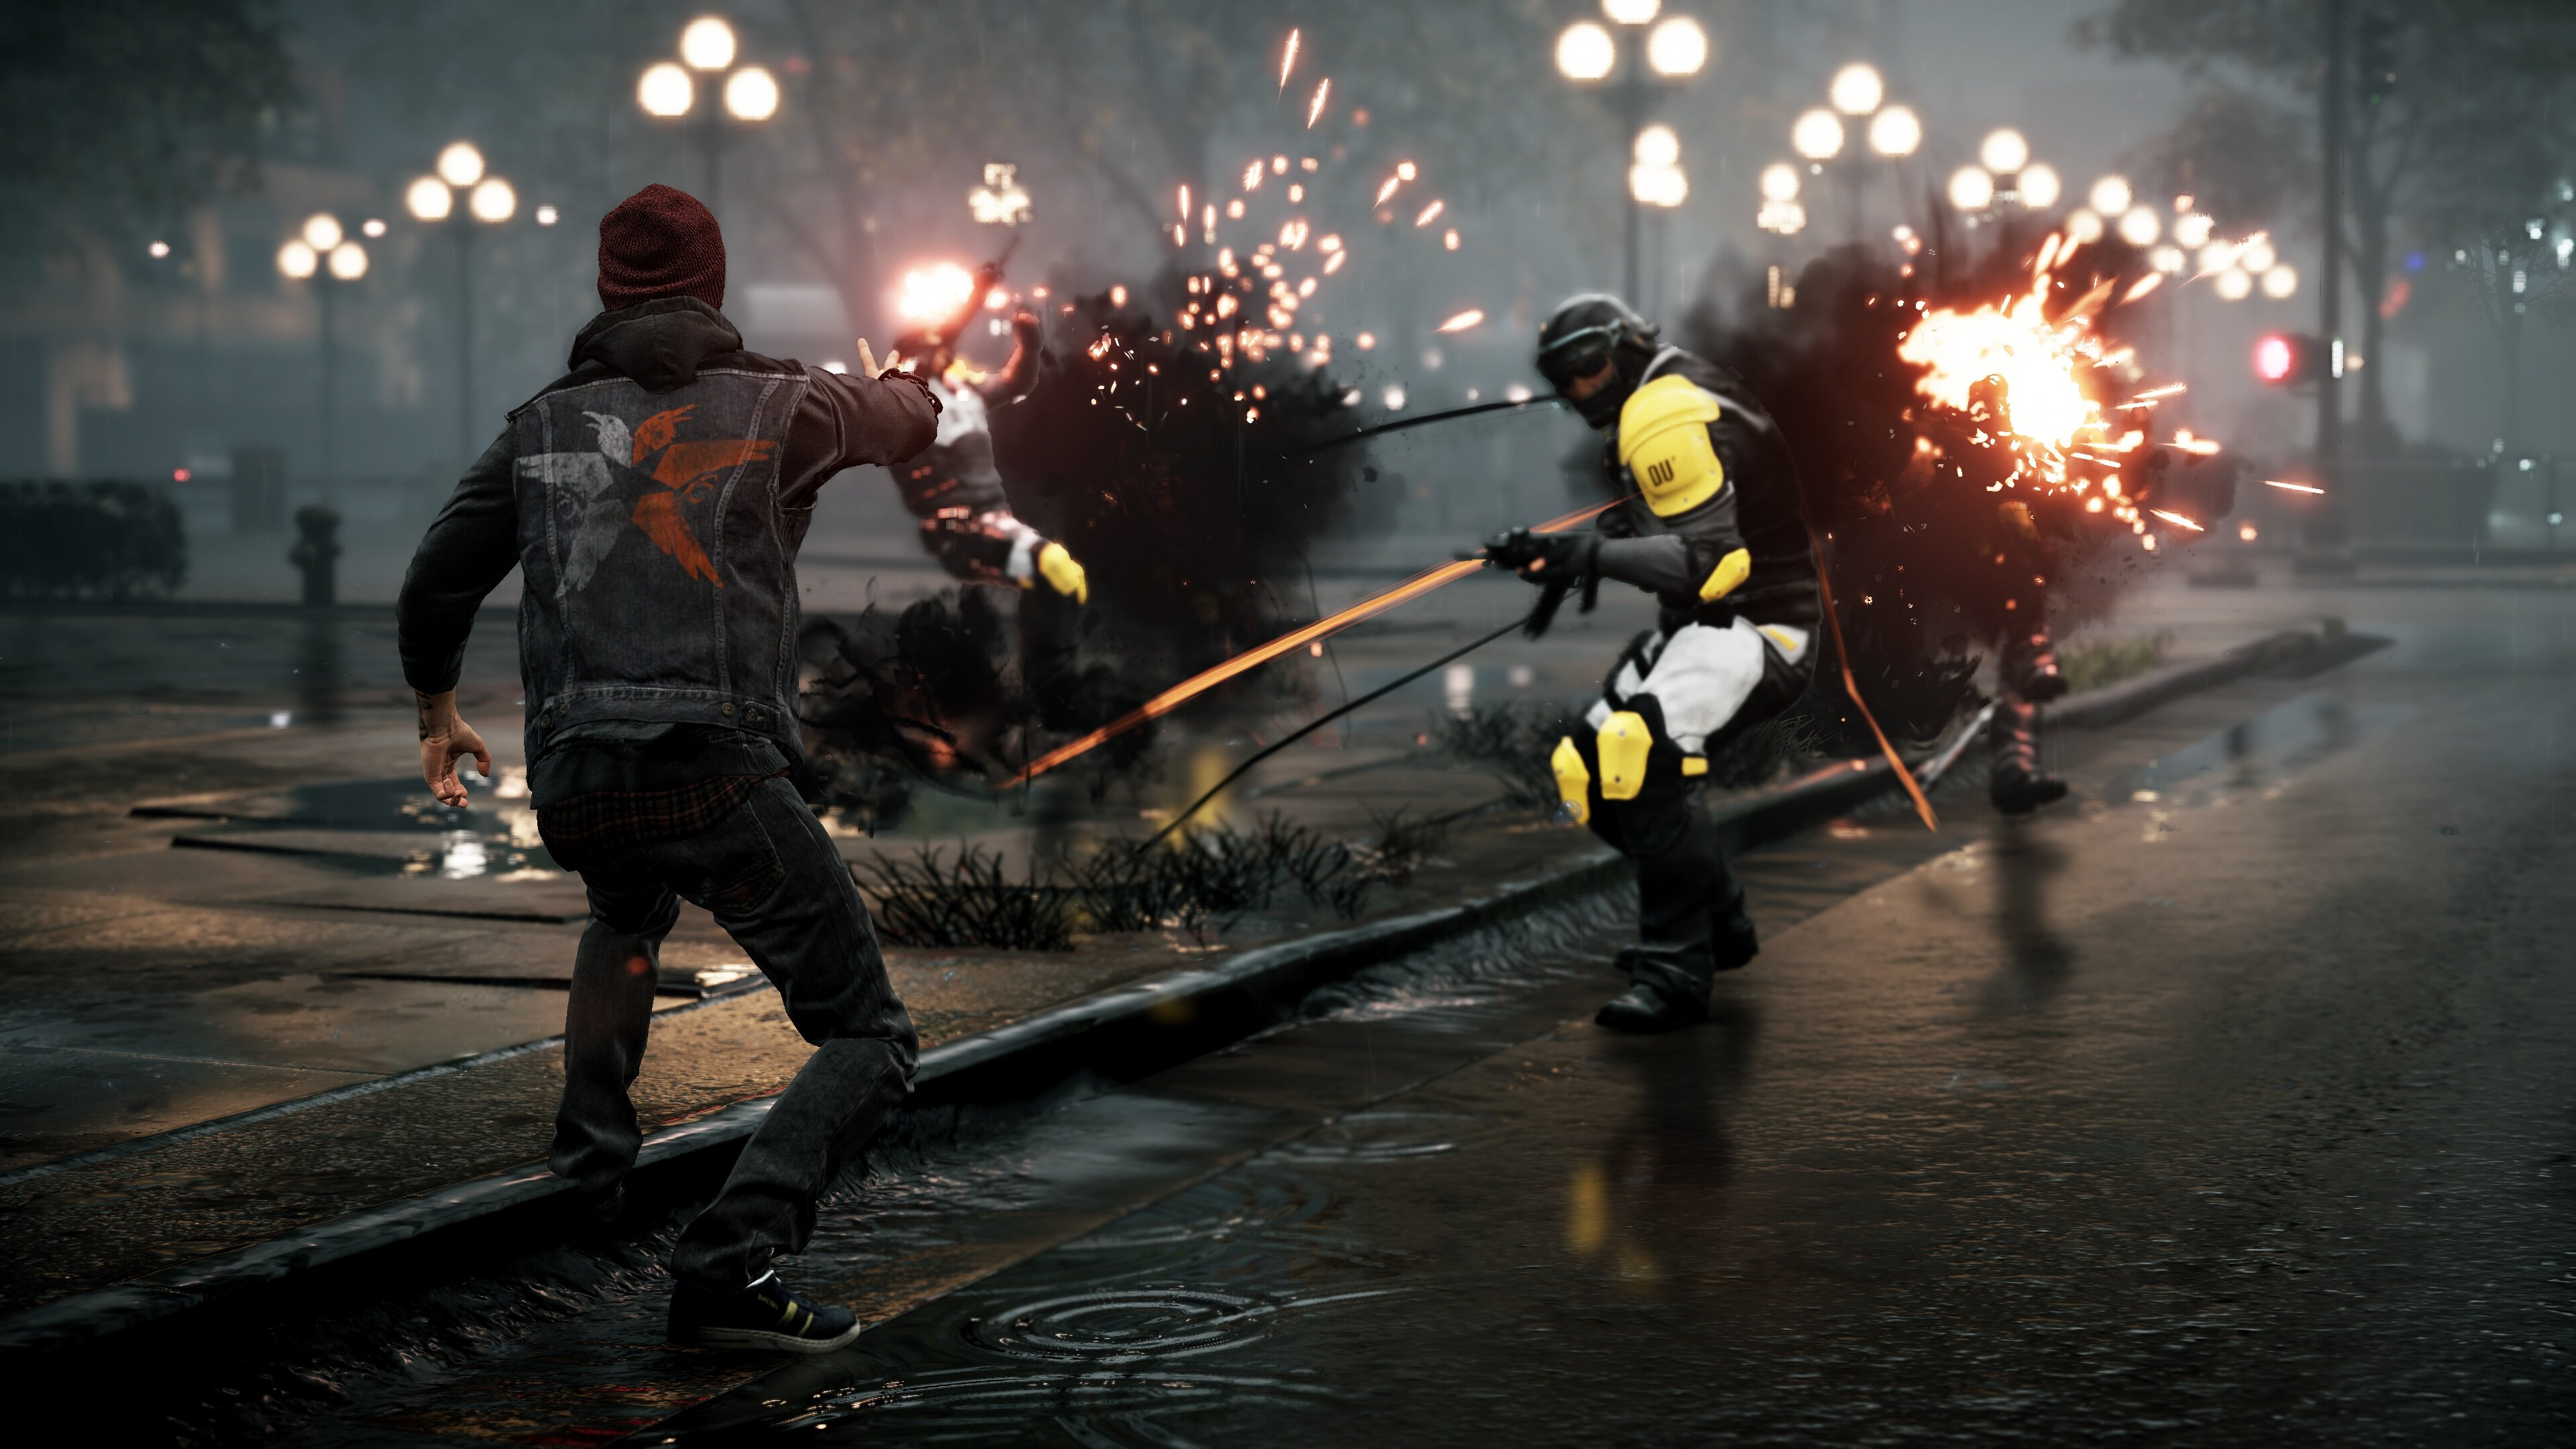 Infamous: Second Son Review: Fast paced action. spectacular graphics. shows true potential of PS4